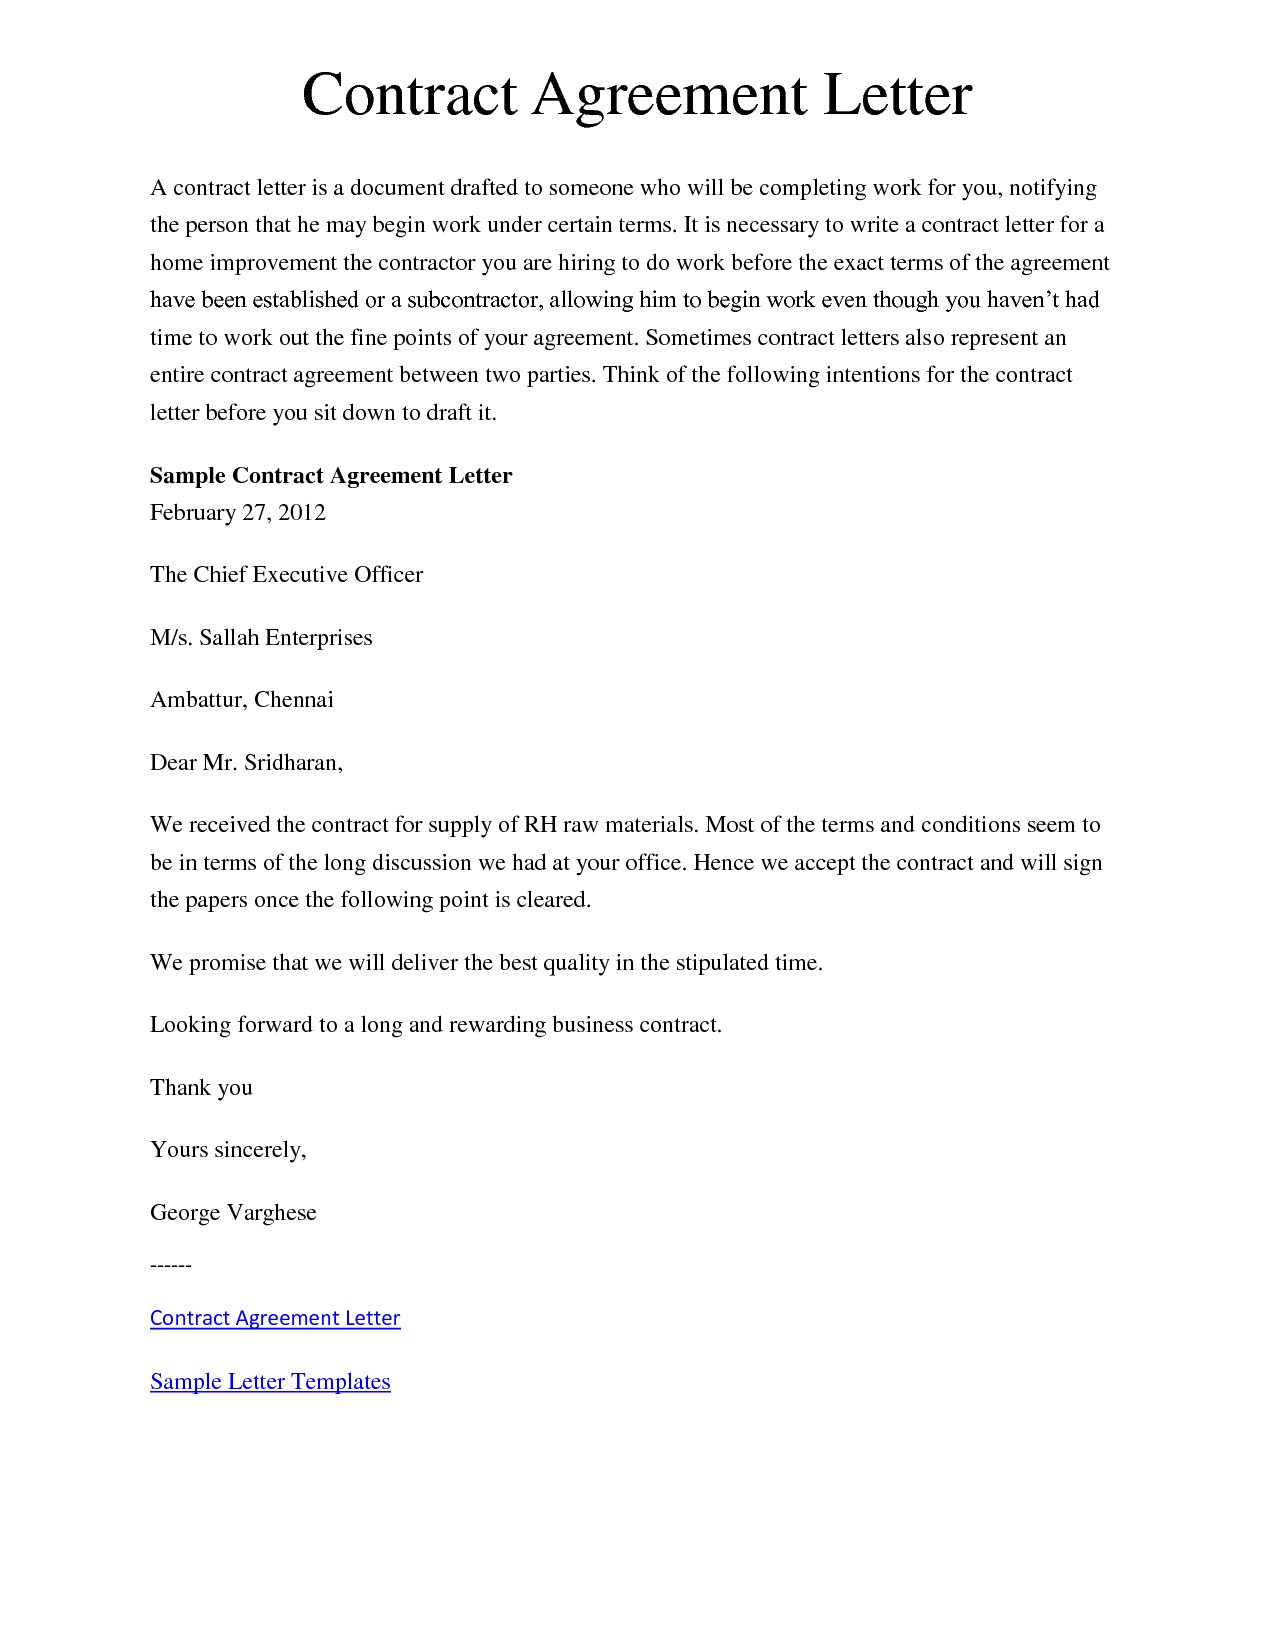 Settlement Agreement Letter Template - Simple Contract Agreement Best Sample Settlement Agreement